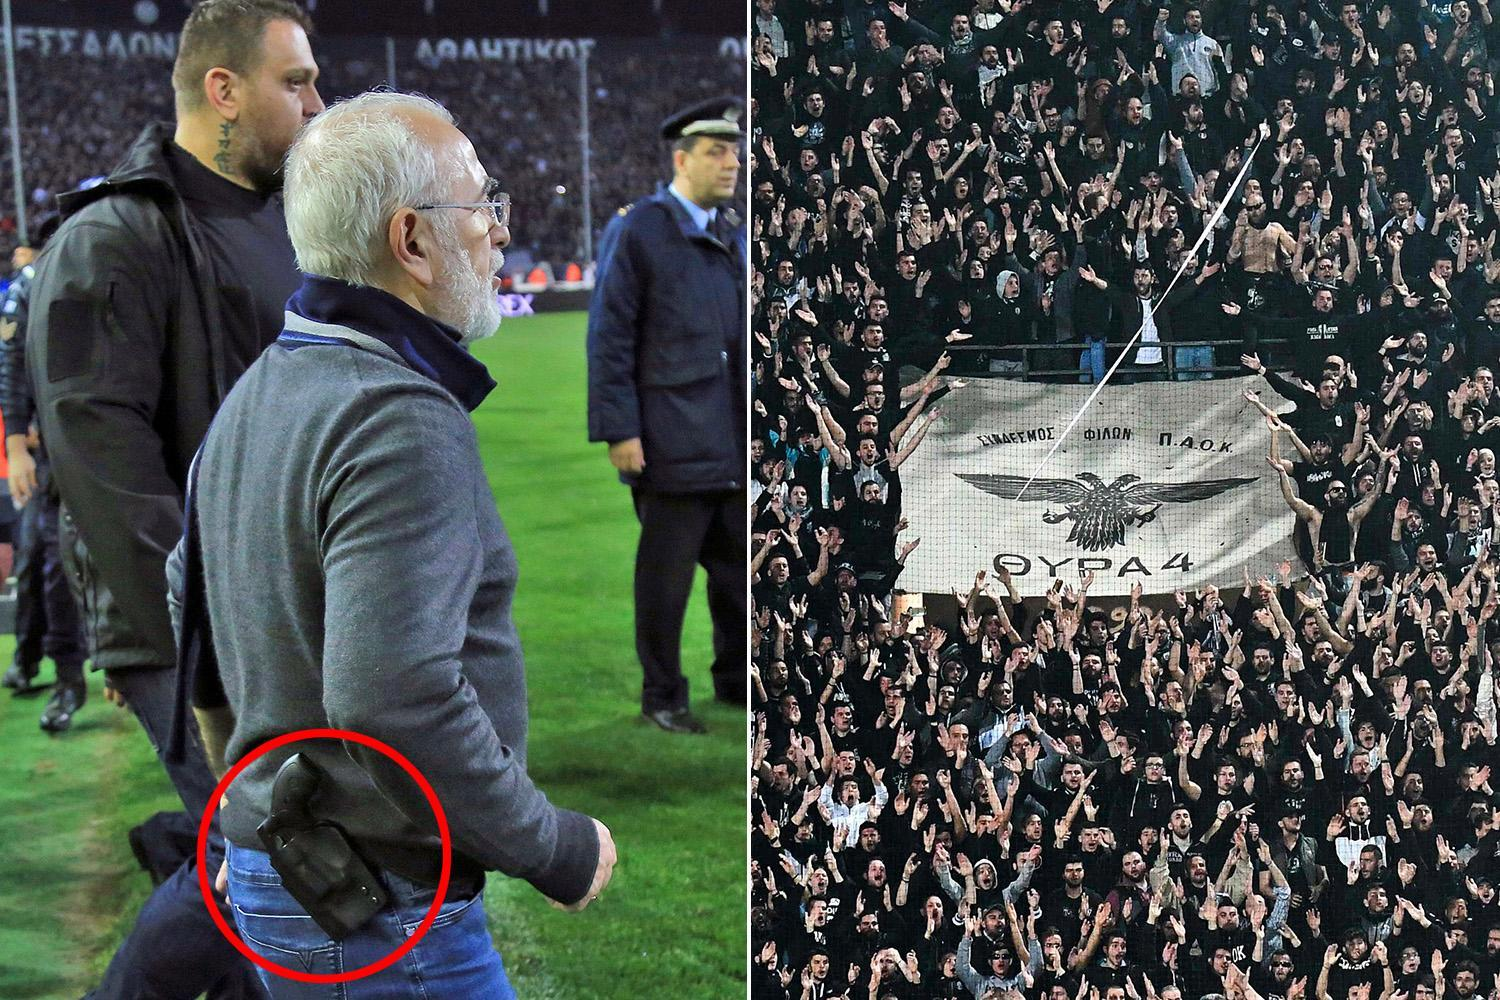 PAOK could be relegated from Greek top flight after crazed owner Ivan Savvidis invaded the pitch appearing to carry a gun.